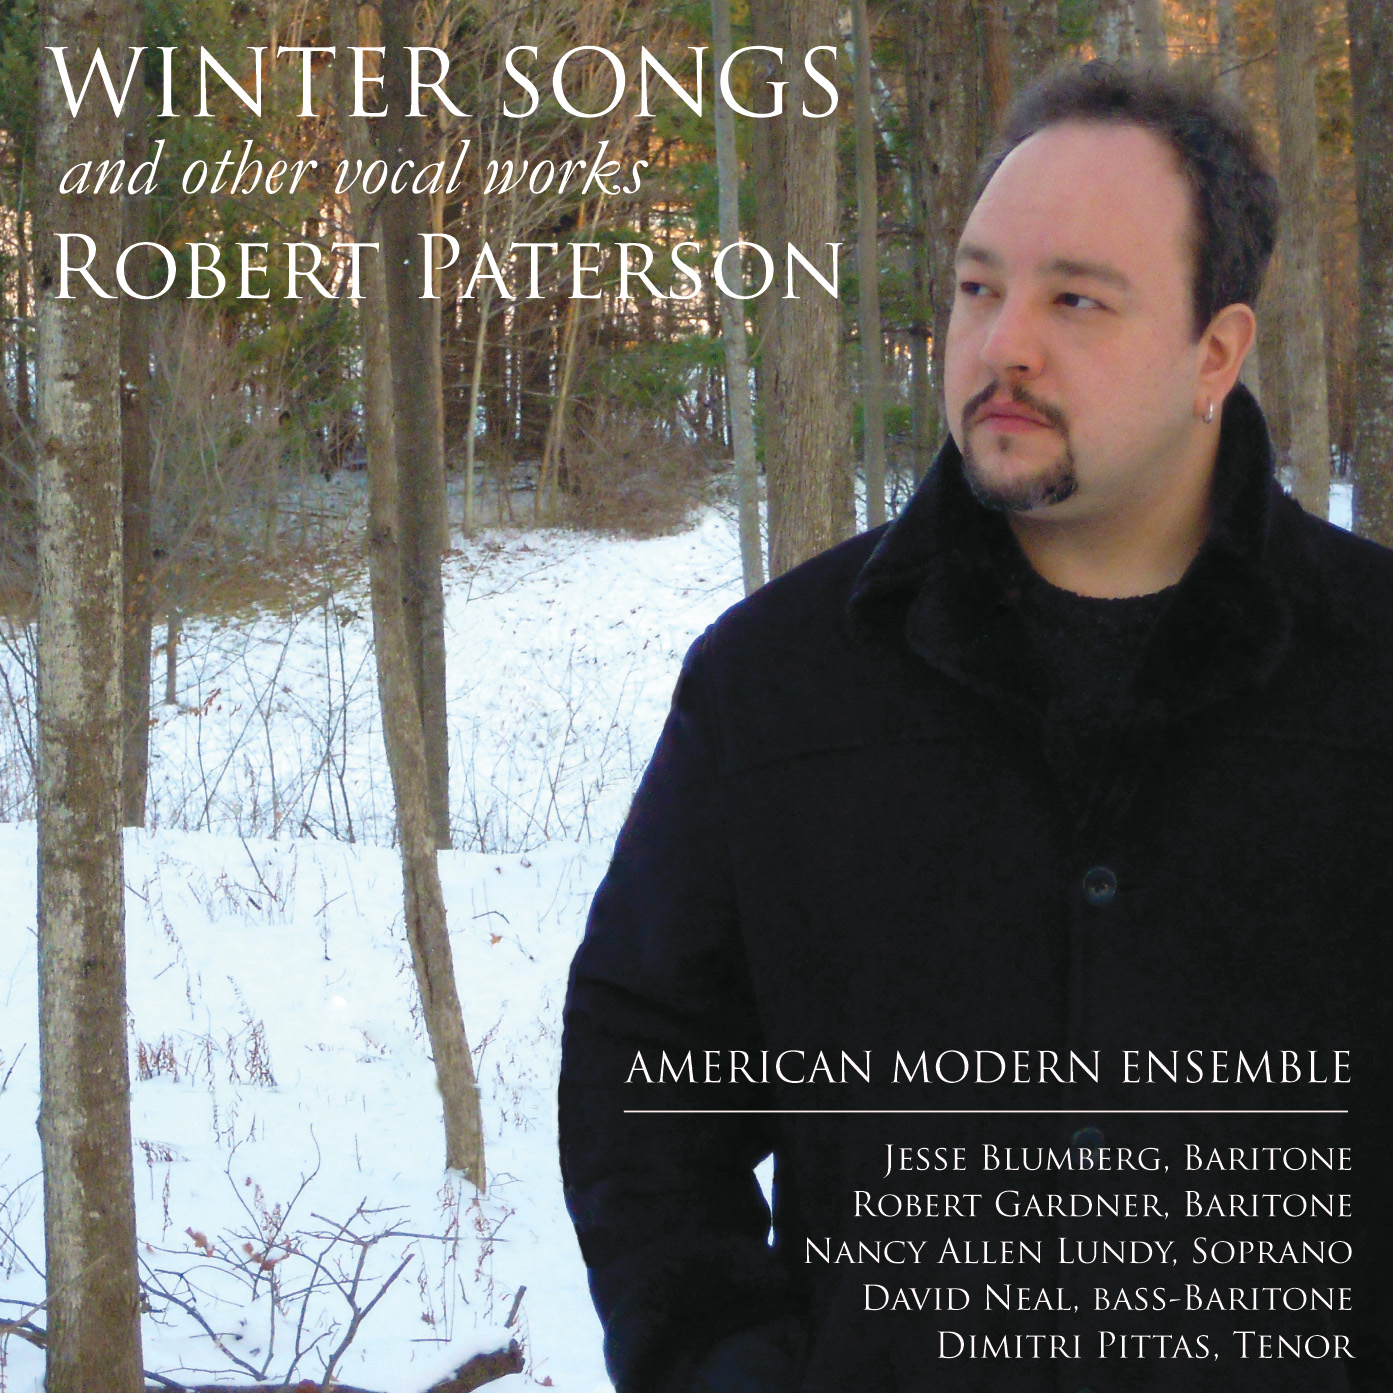 Winter Songs and Other Vocal Works: Robert Paterson